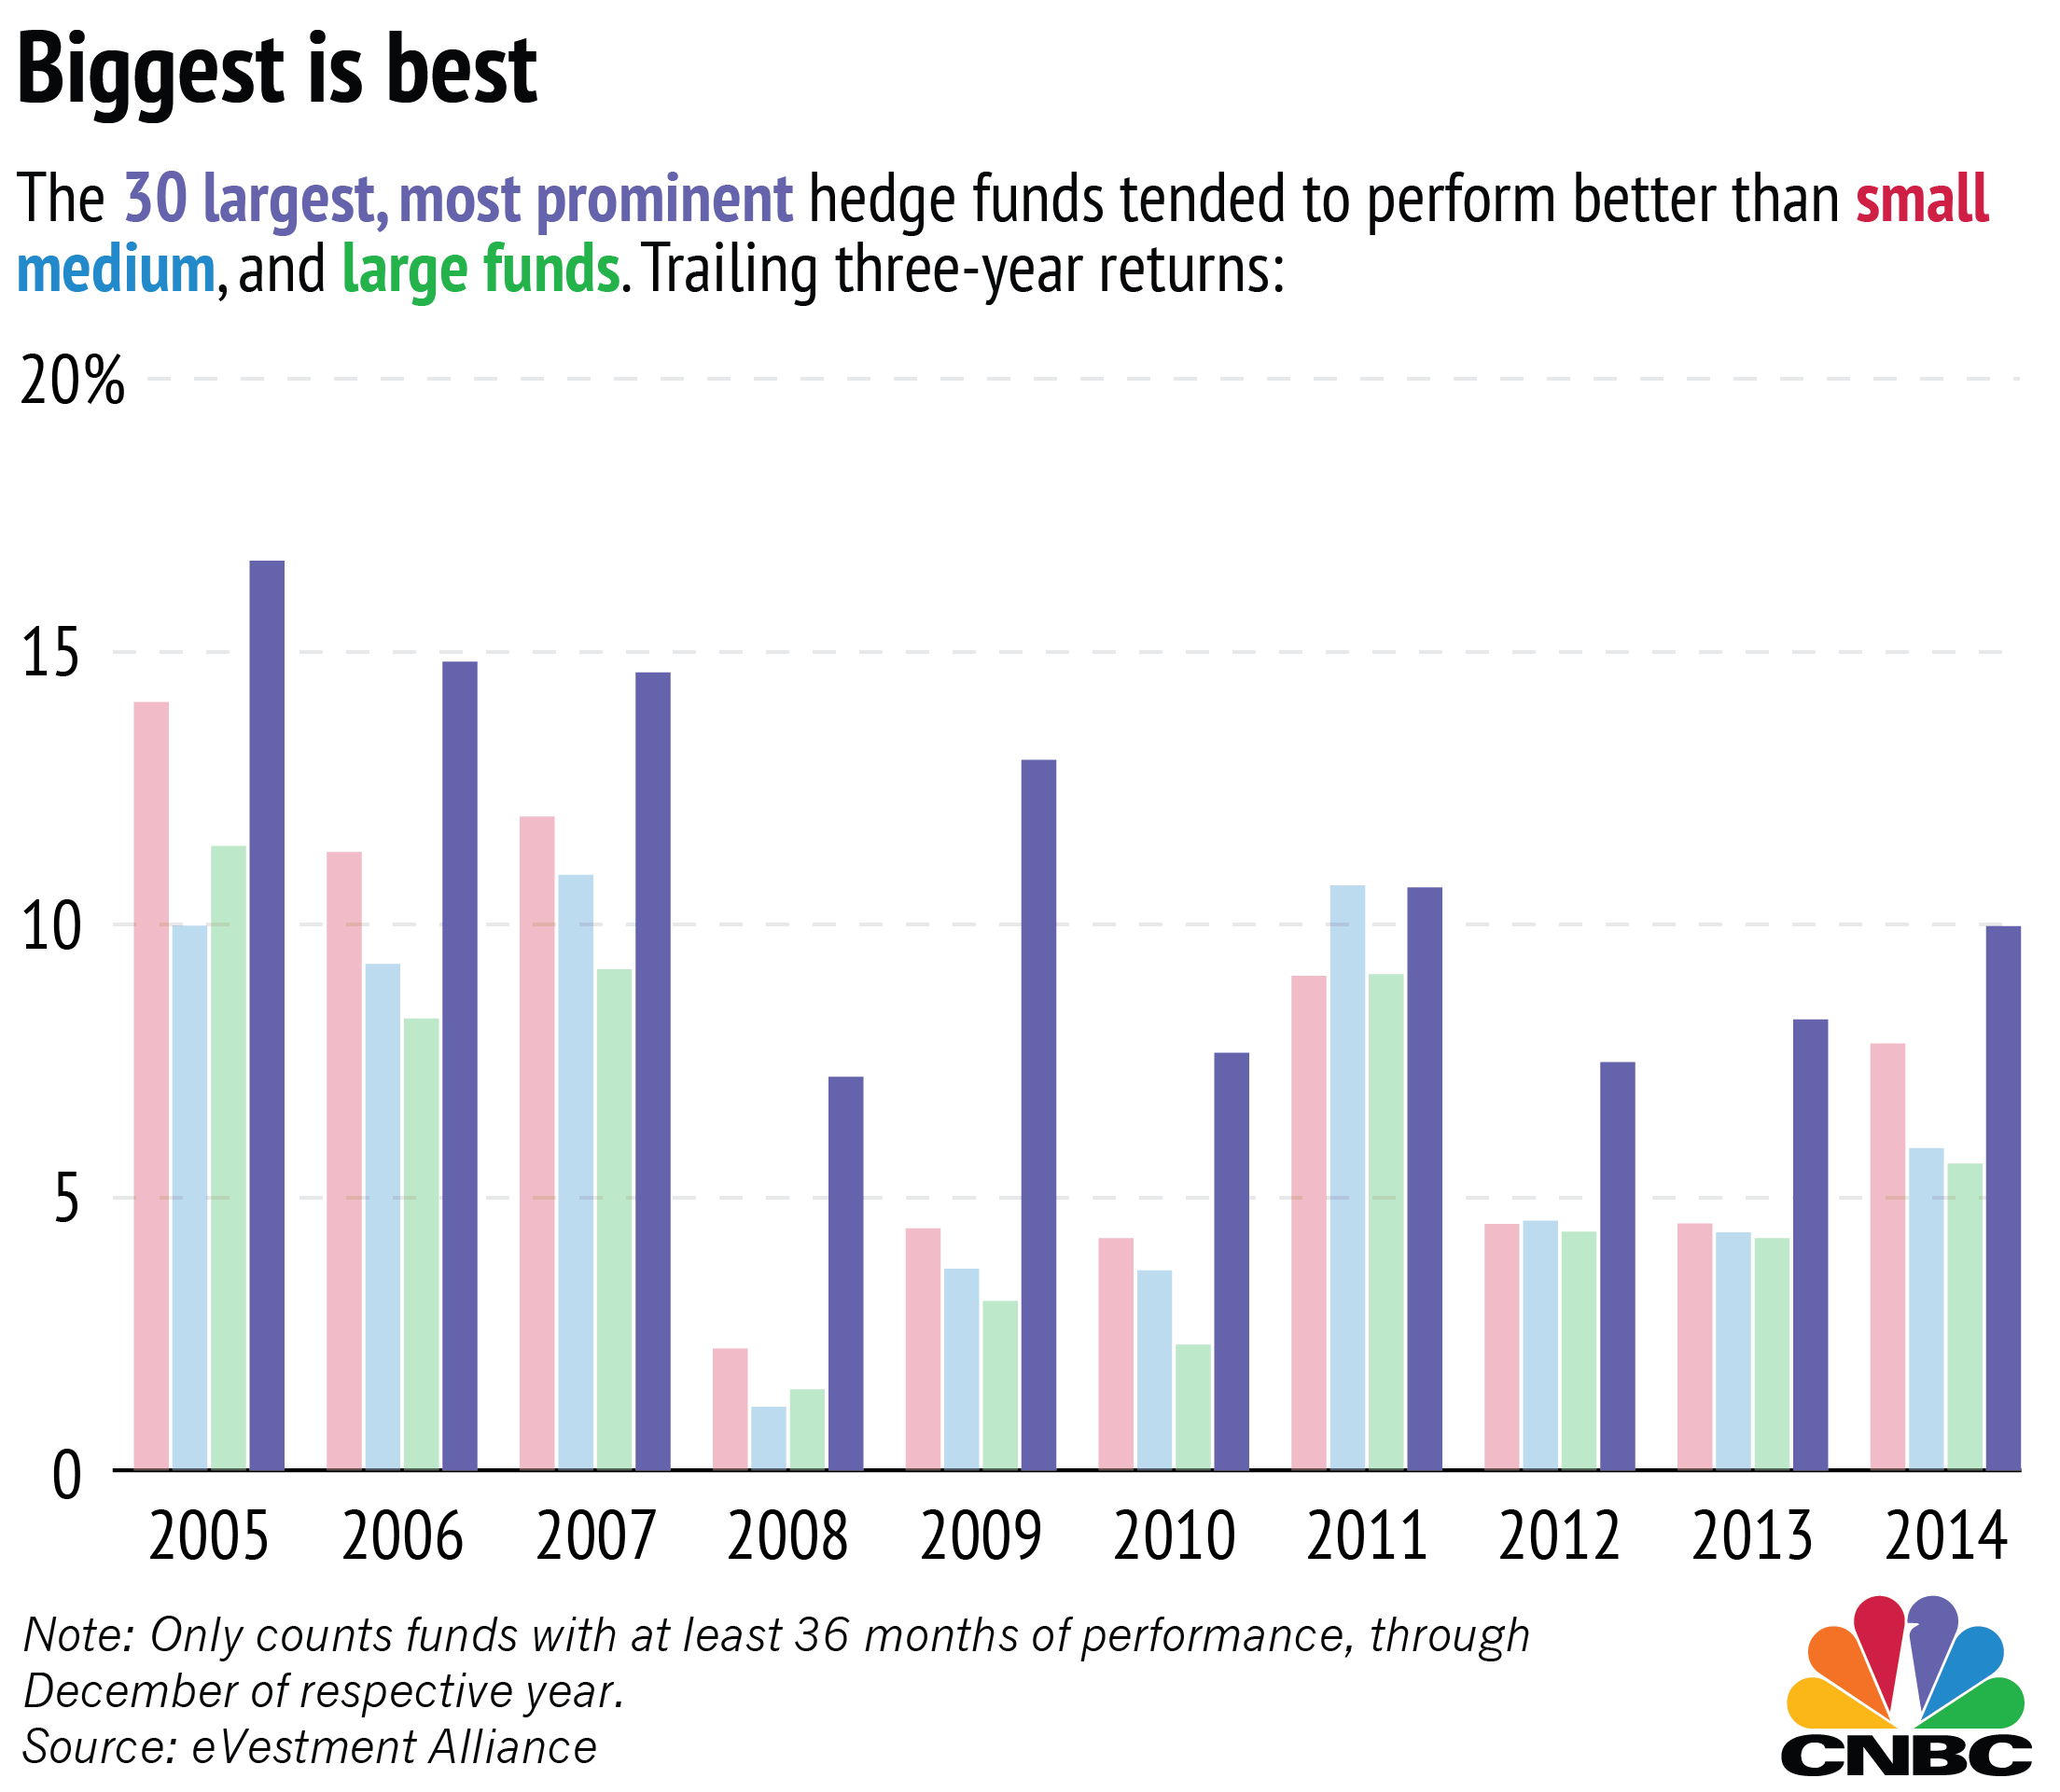 small hedge funds aren't as great as they say